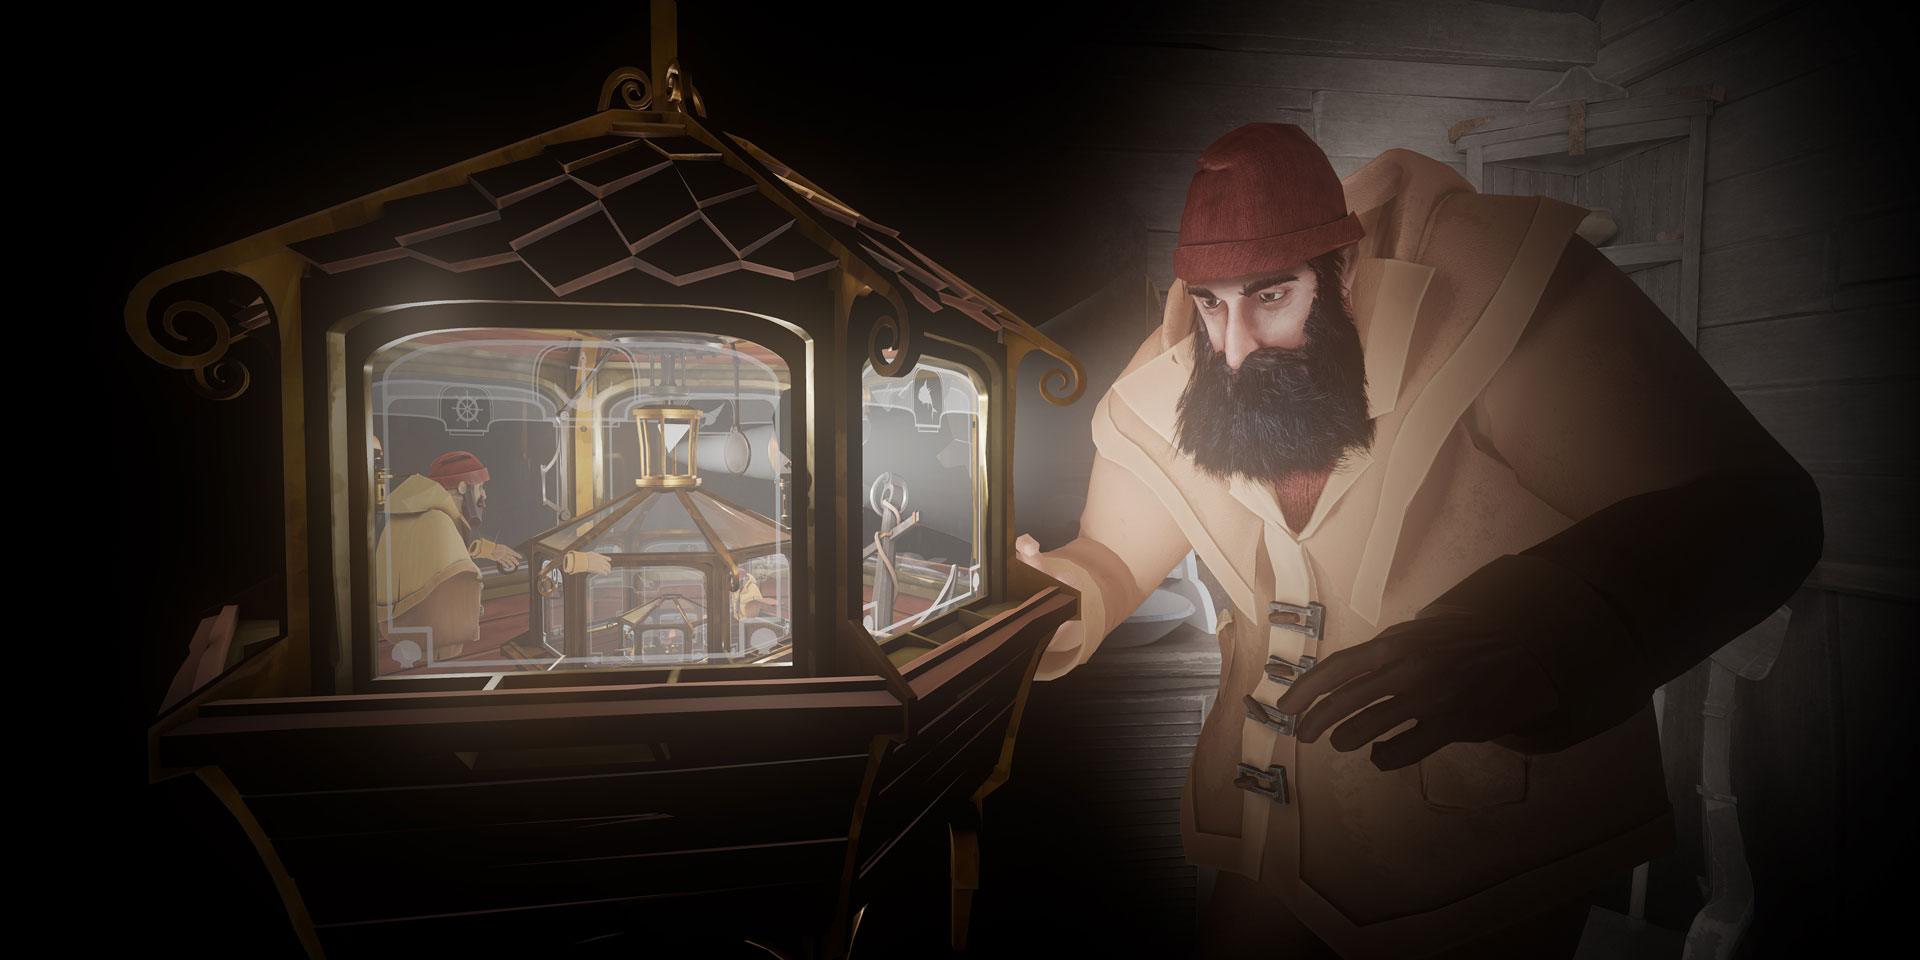 Exploring A Fisherman's Tale - One of VR's most polished